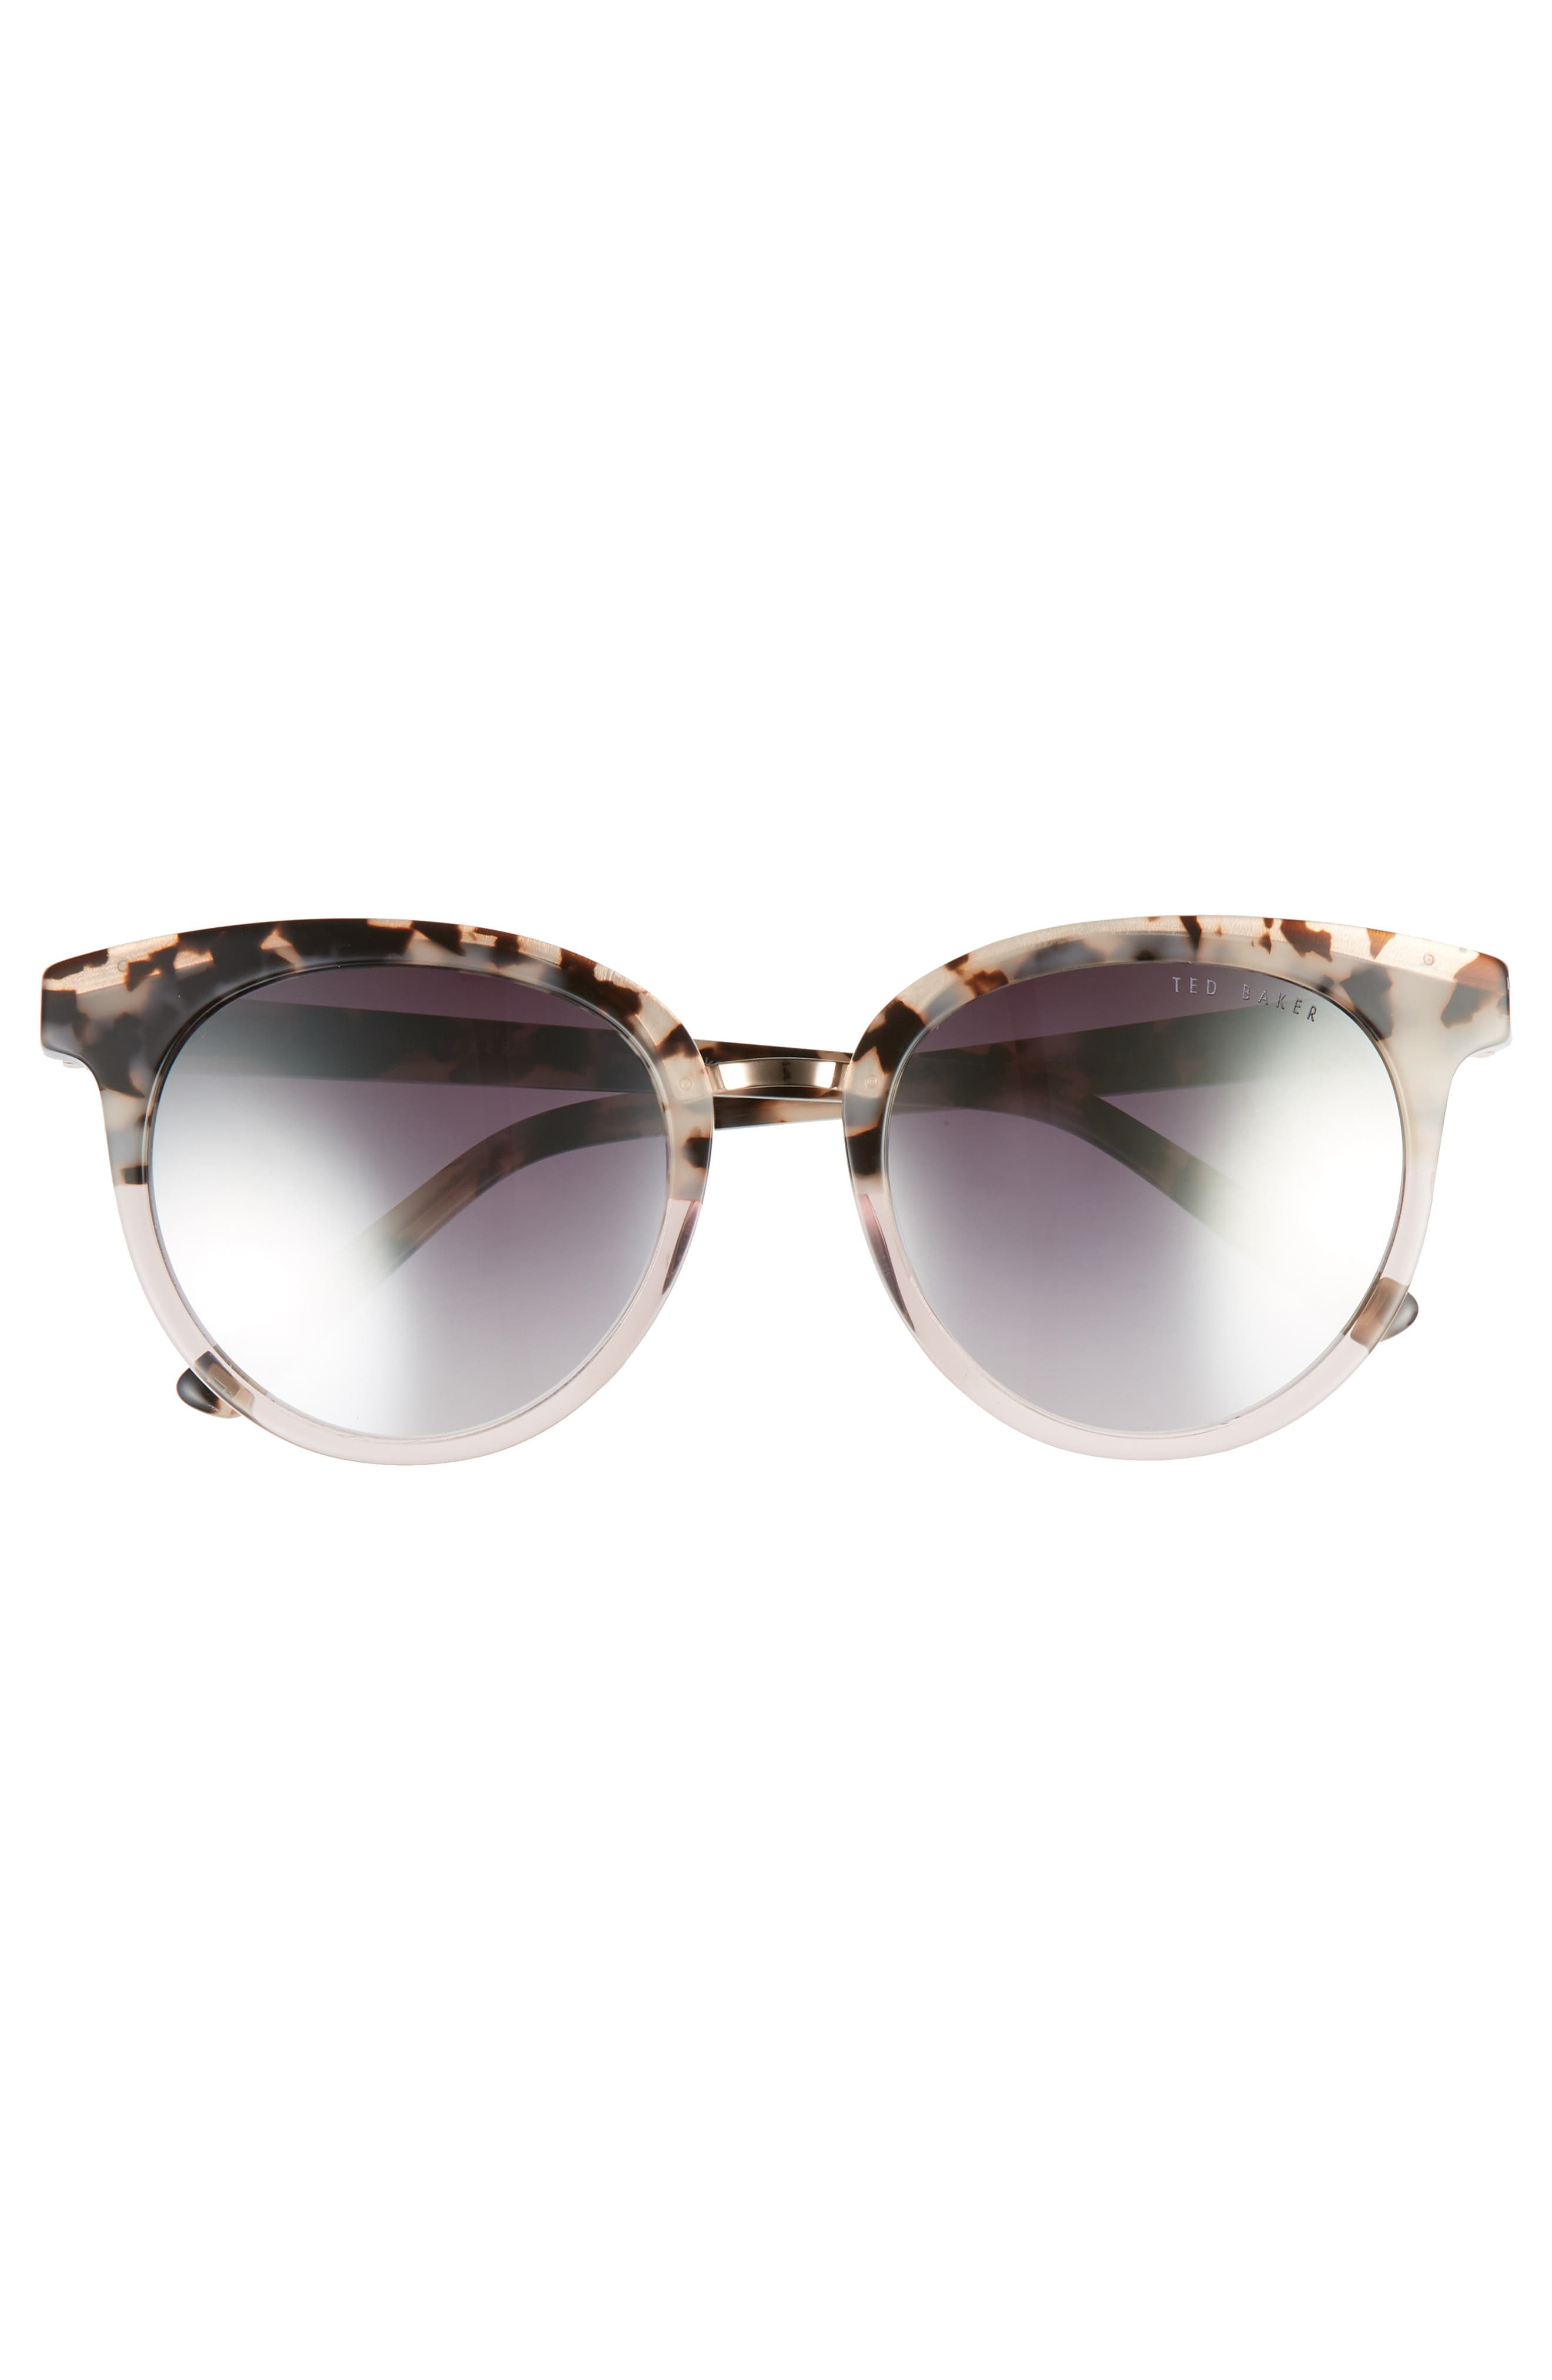 52mm Round Sunglasses,                             Alternate thumbnail 3, color,                             IVORY